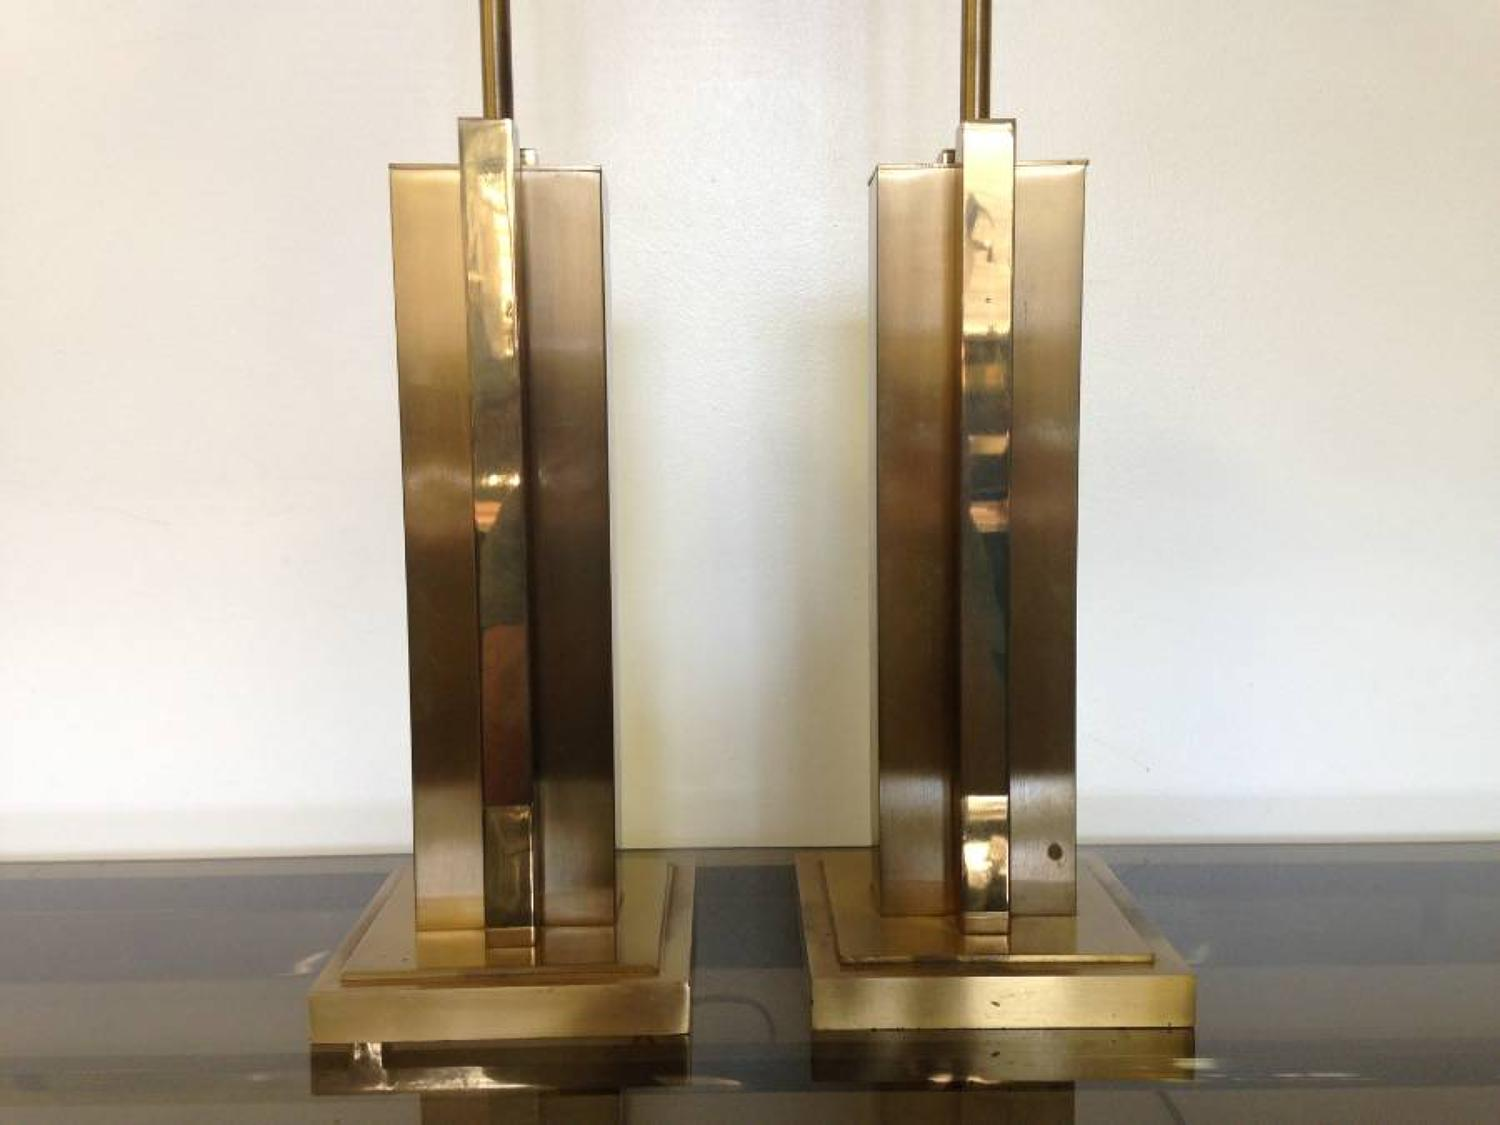 A pair of 1970s brass table lamps